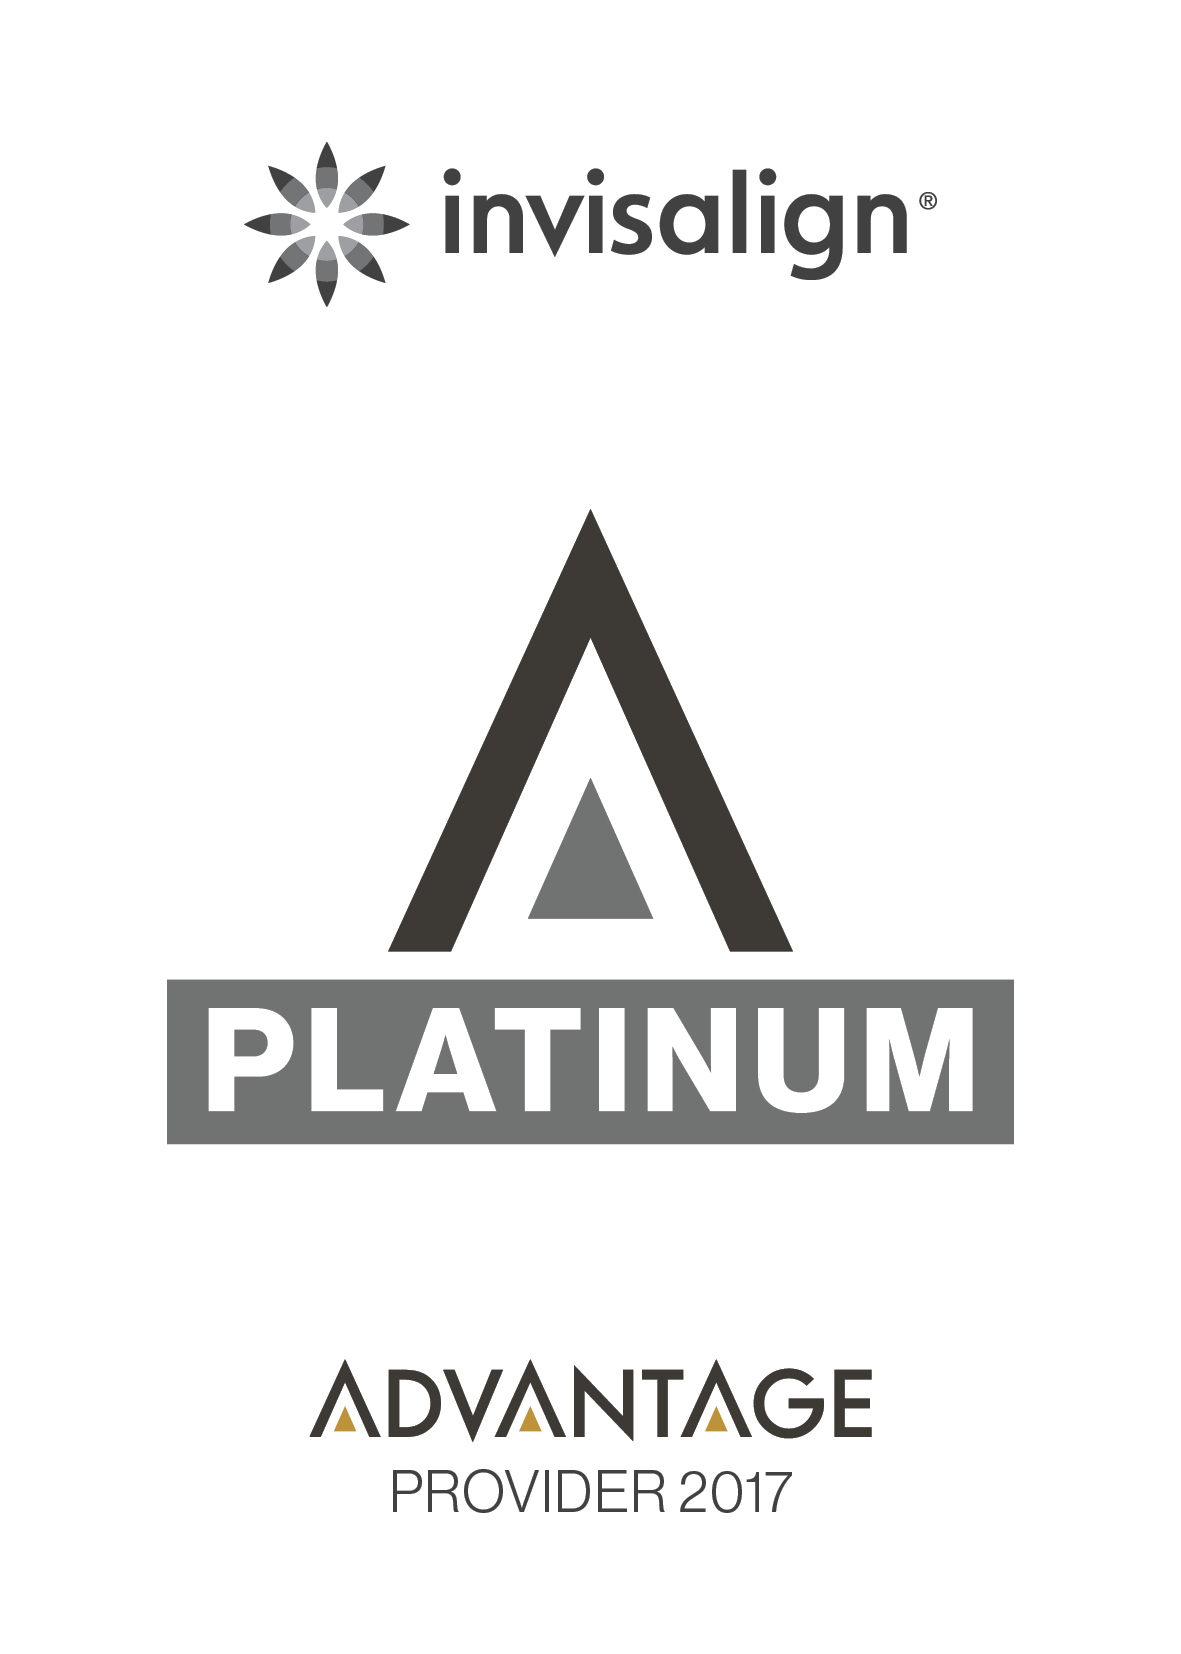 We are a Platinum Provider of Invisalign